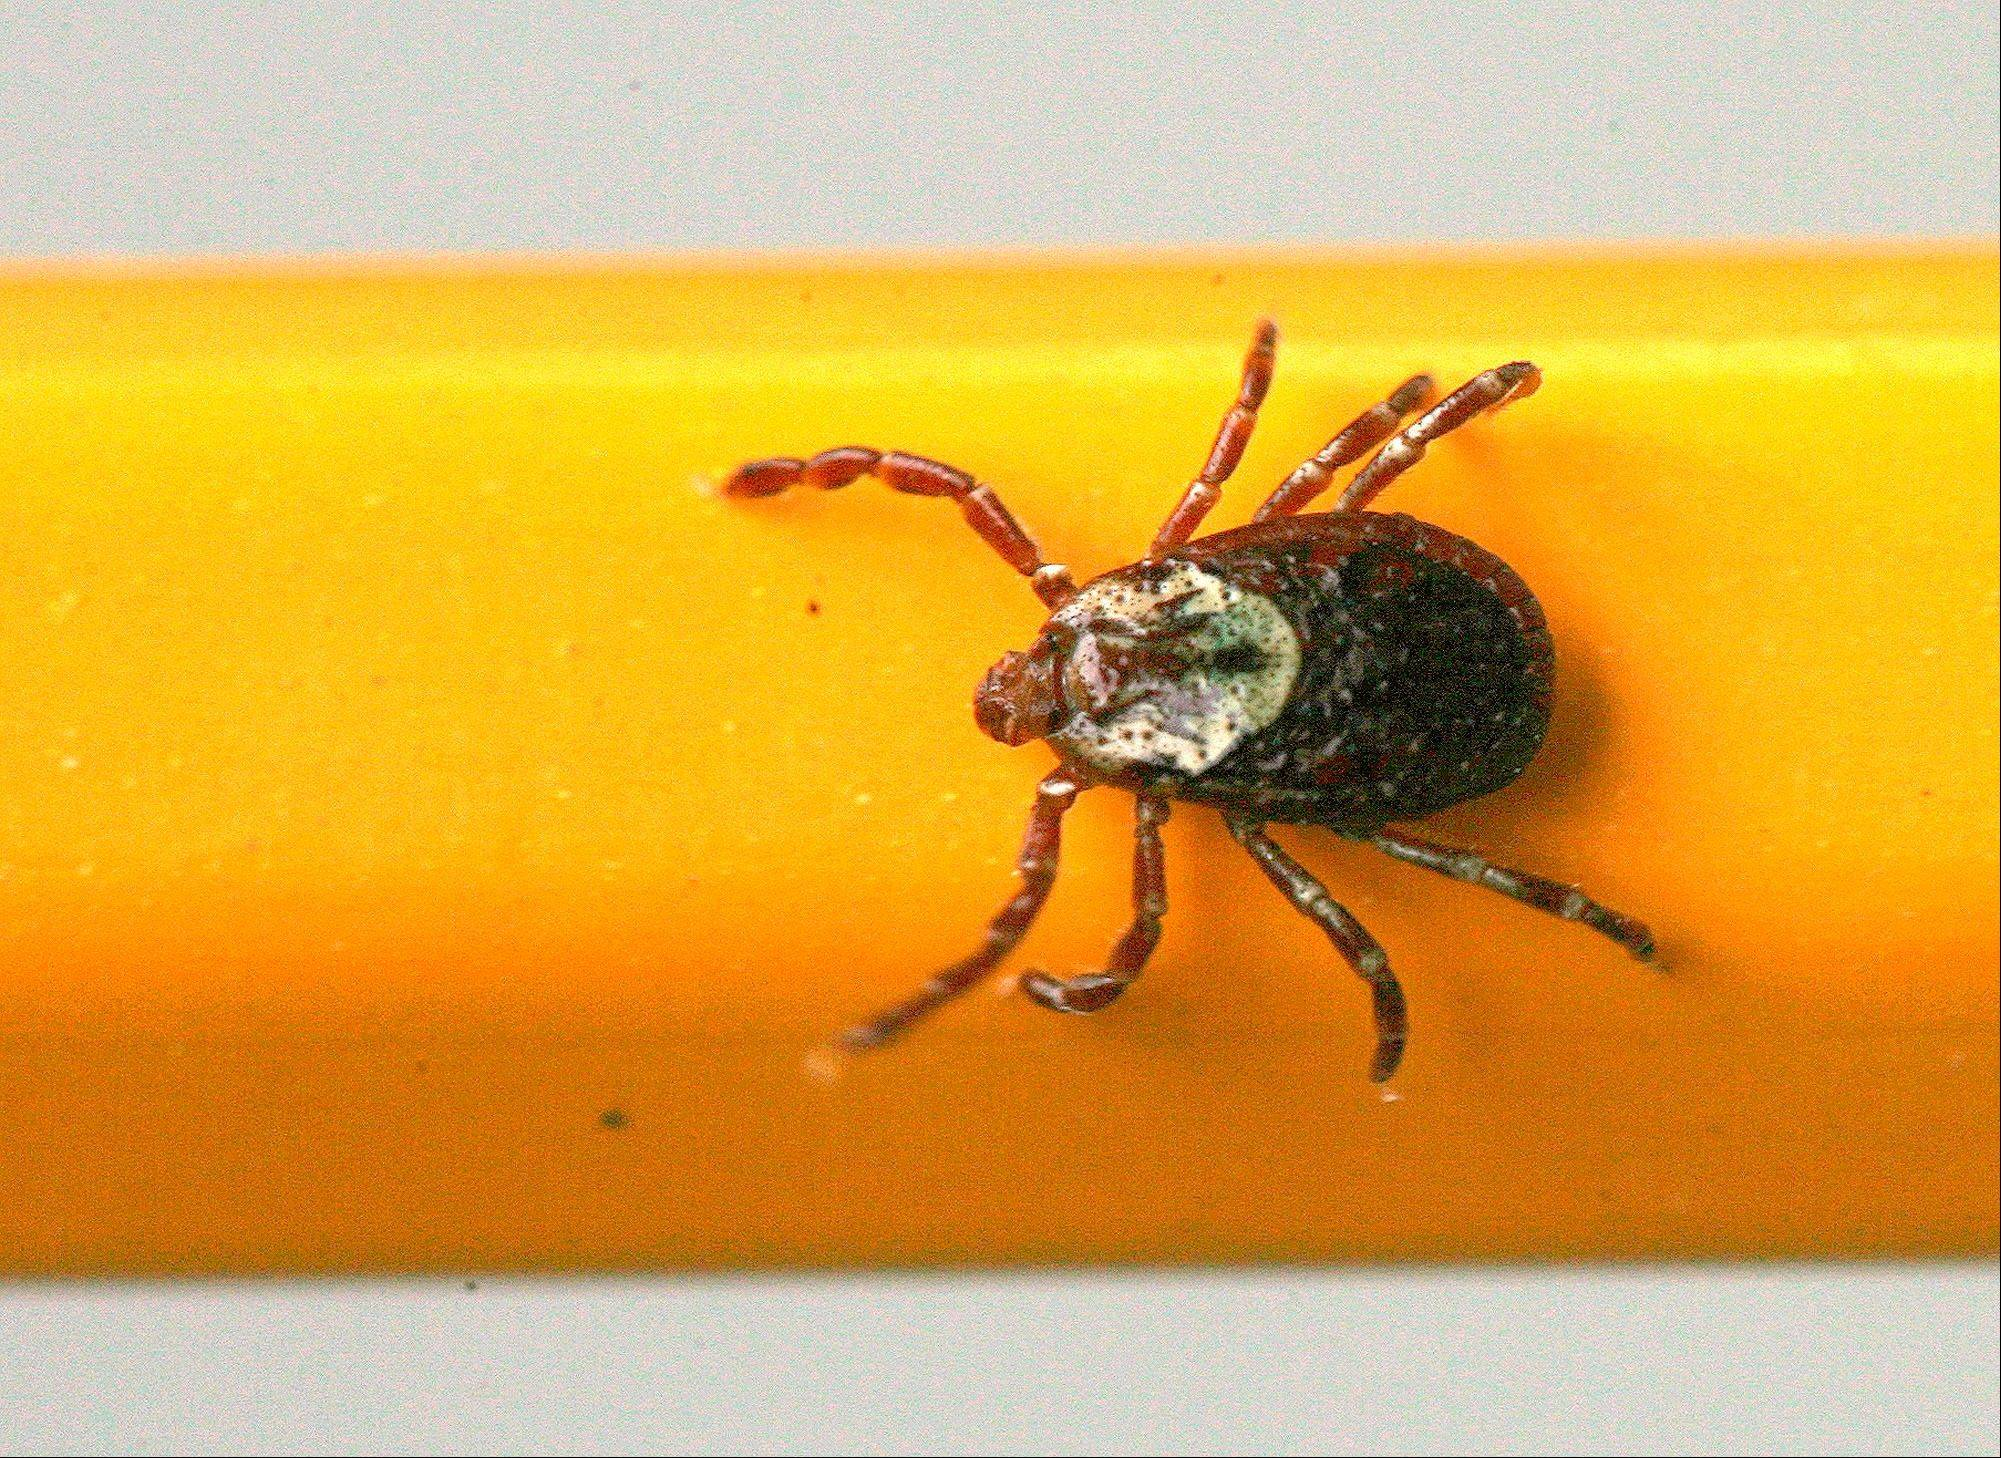 A wood tick clings to a pencil used for scale.